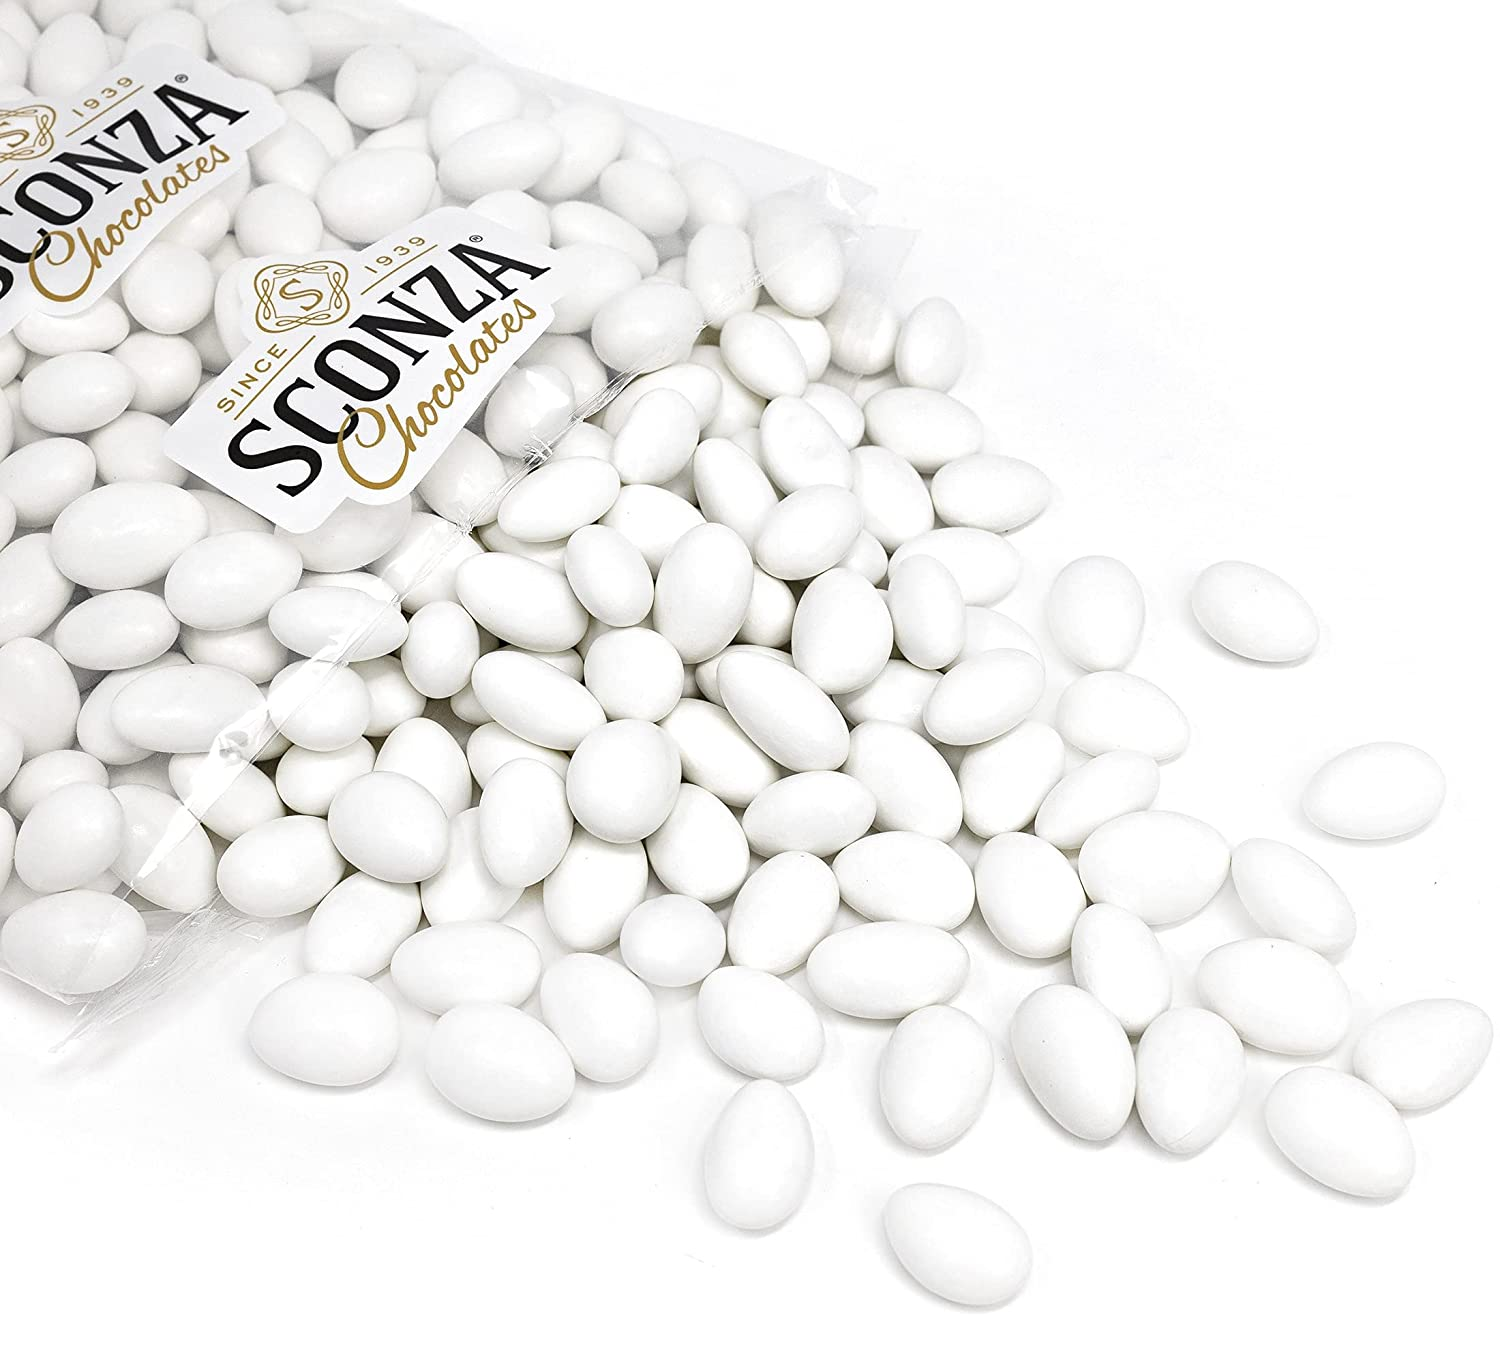 Superior White Colorado Springs Mall Jordan Almonds By Sconza Covered 5LB Candy Chocolates